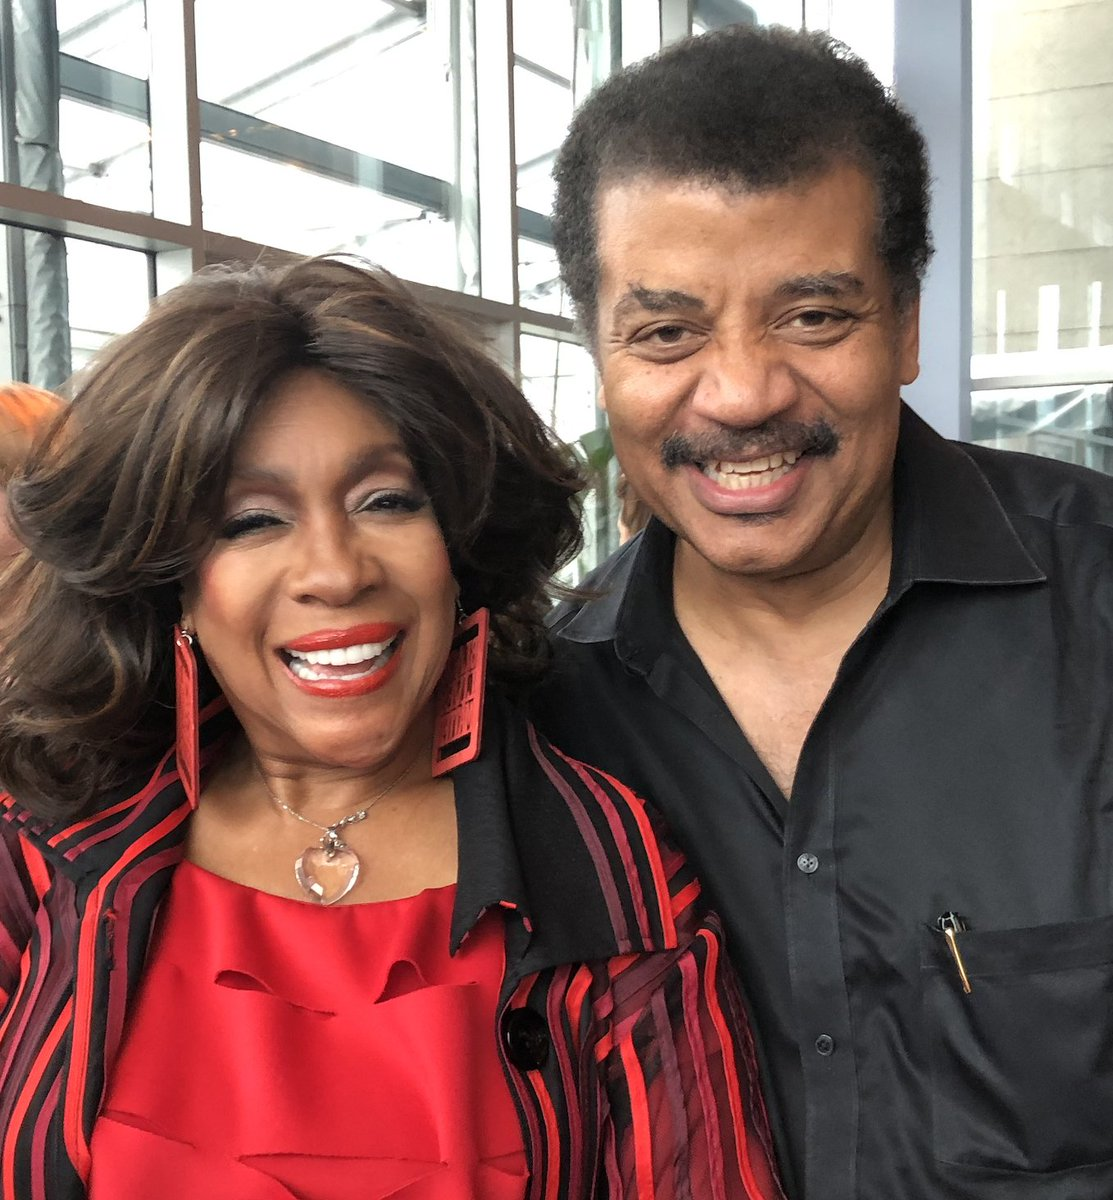 Founding member of MOTOWN's Supremes, whose songs lifted so many of us up, in an era when we were reaching for a voice of our own in an unwelcoming world.  Mary Wilson, RIP (1944-2021)